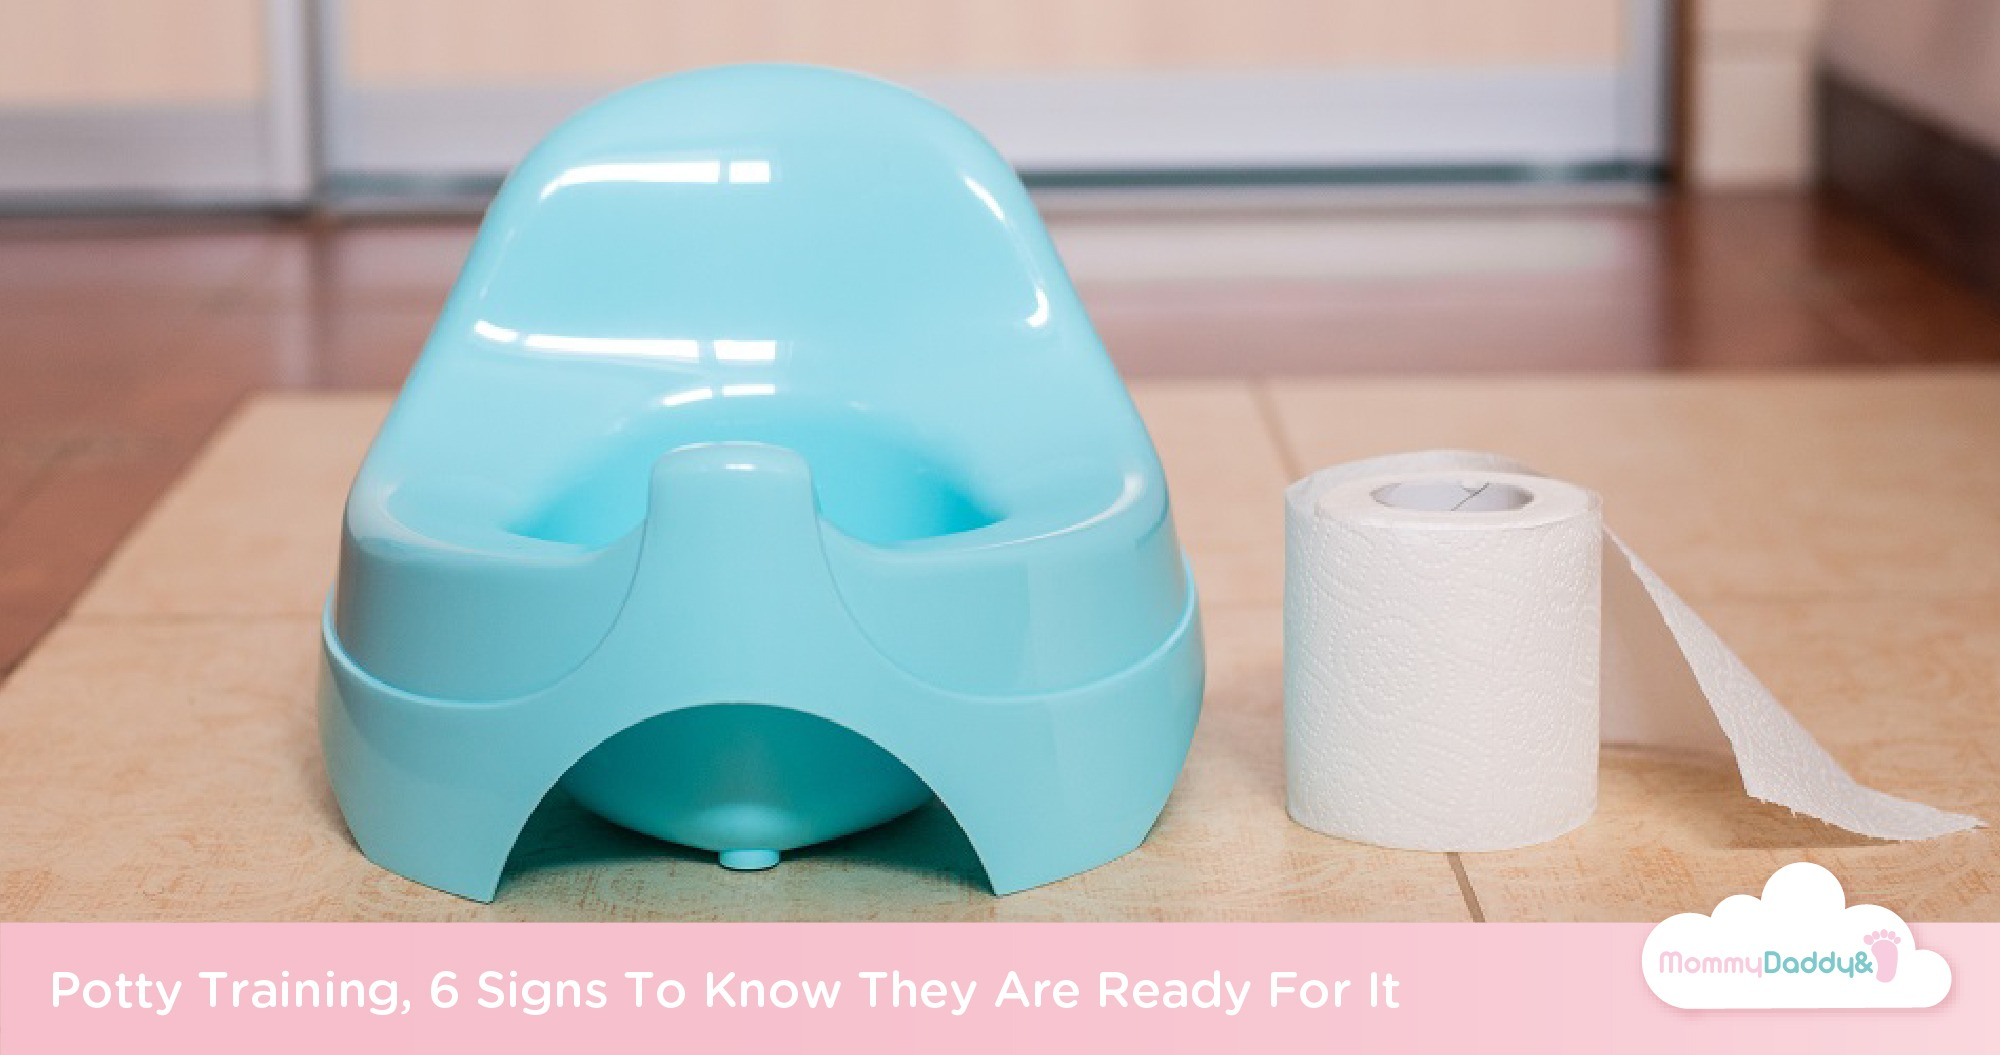 Potty Training, 6 Signs To Know They Are Ready For It